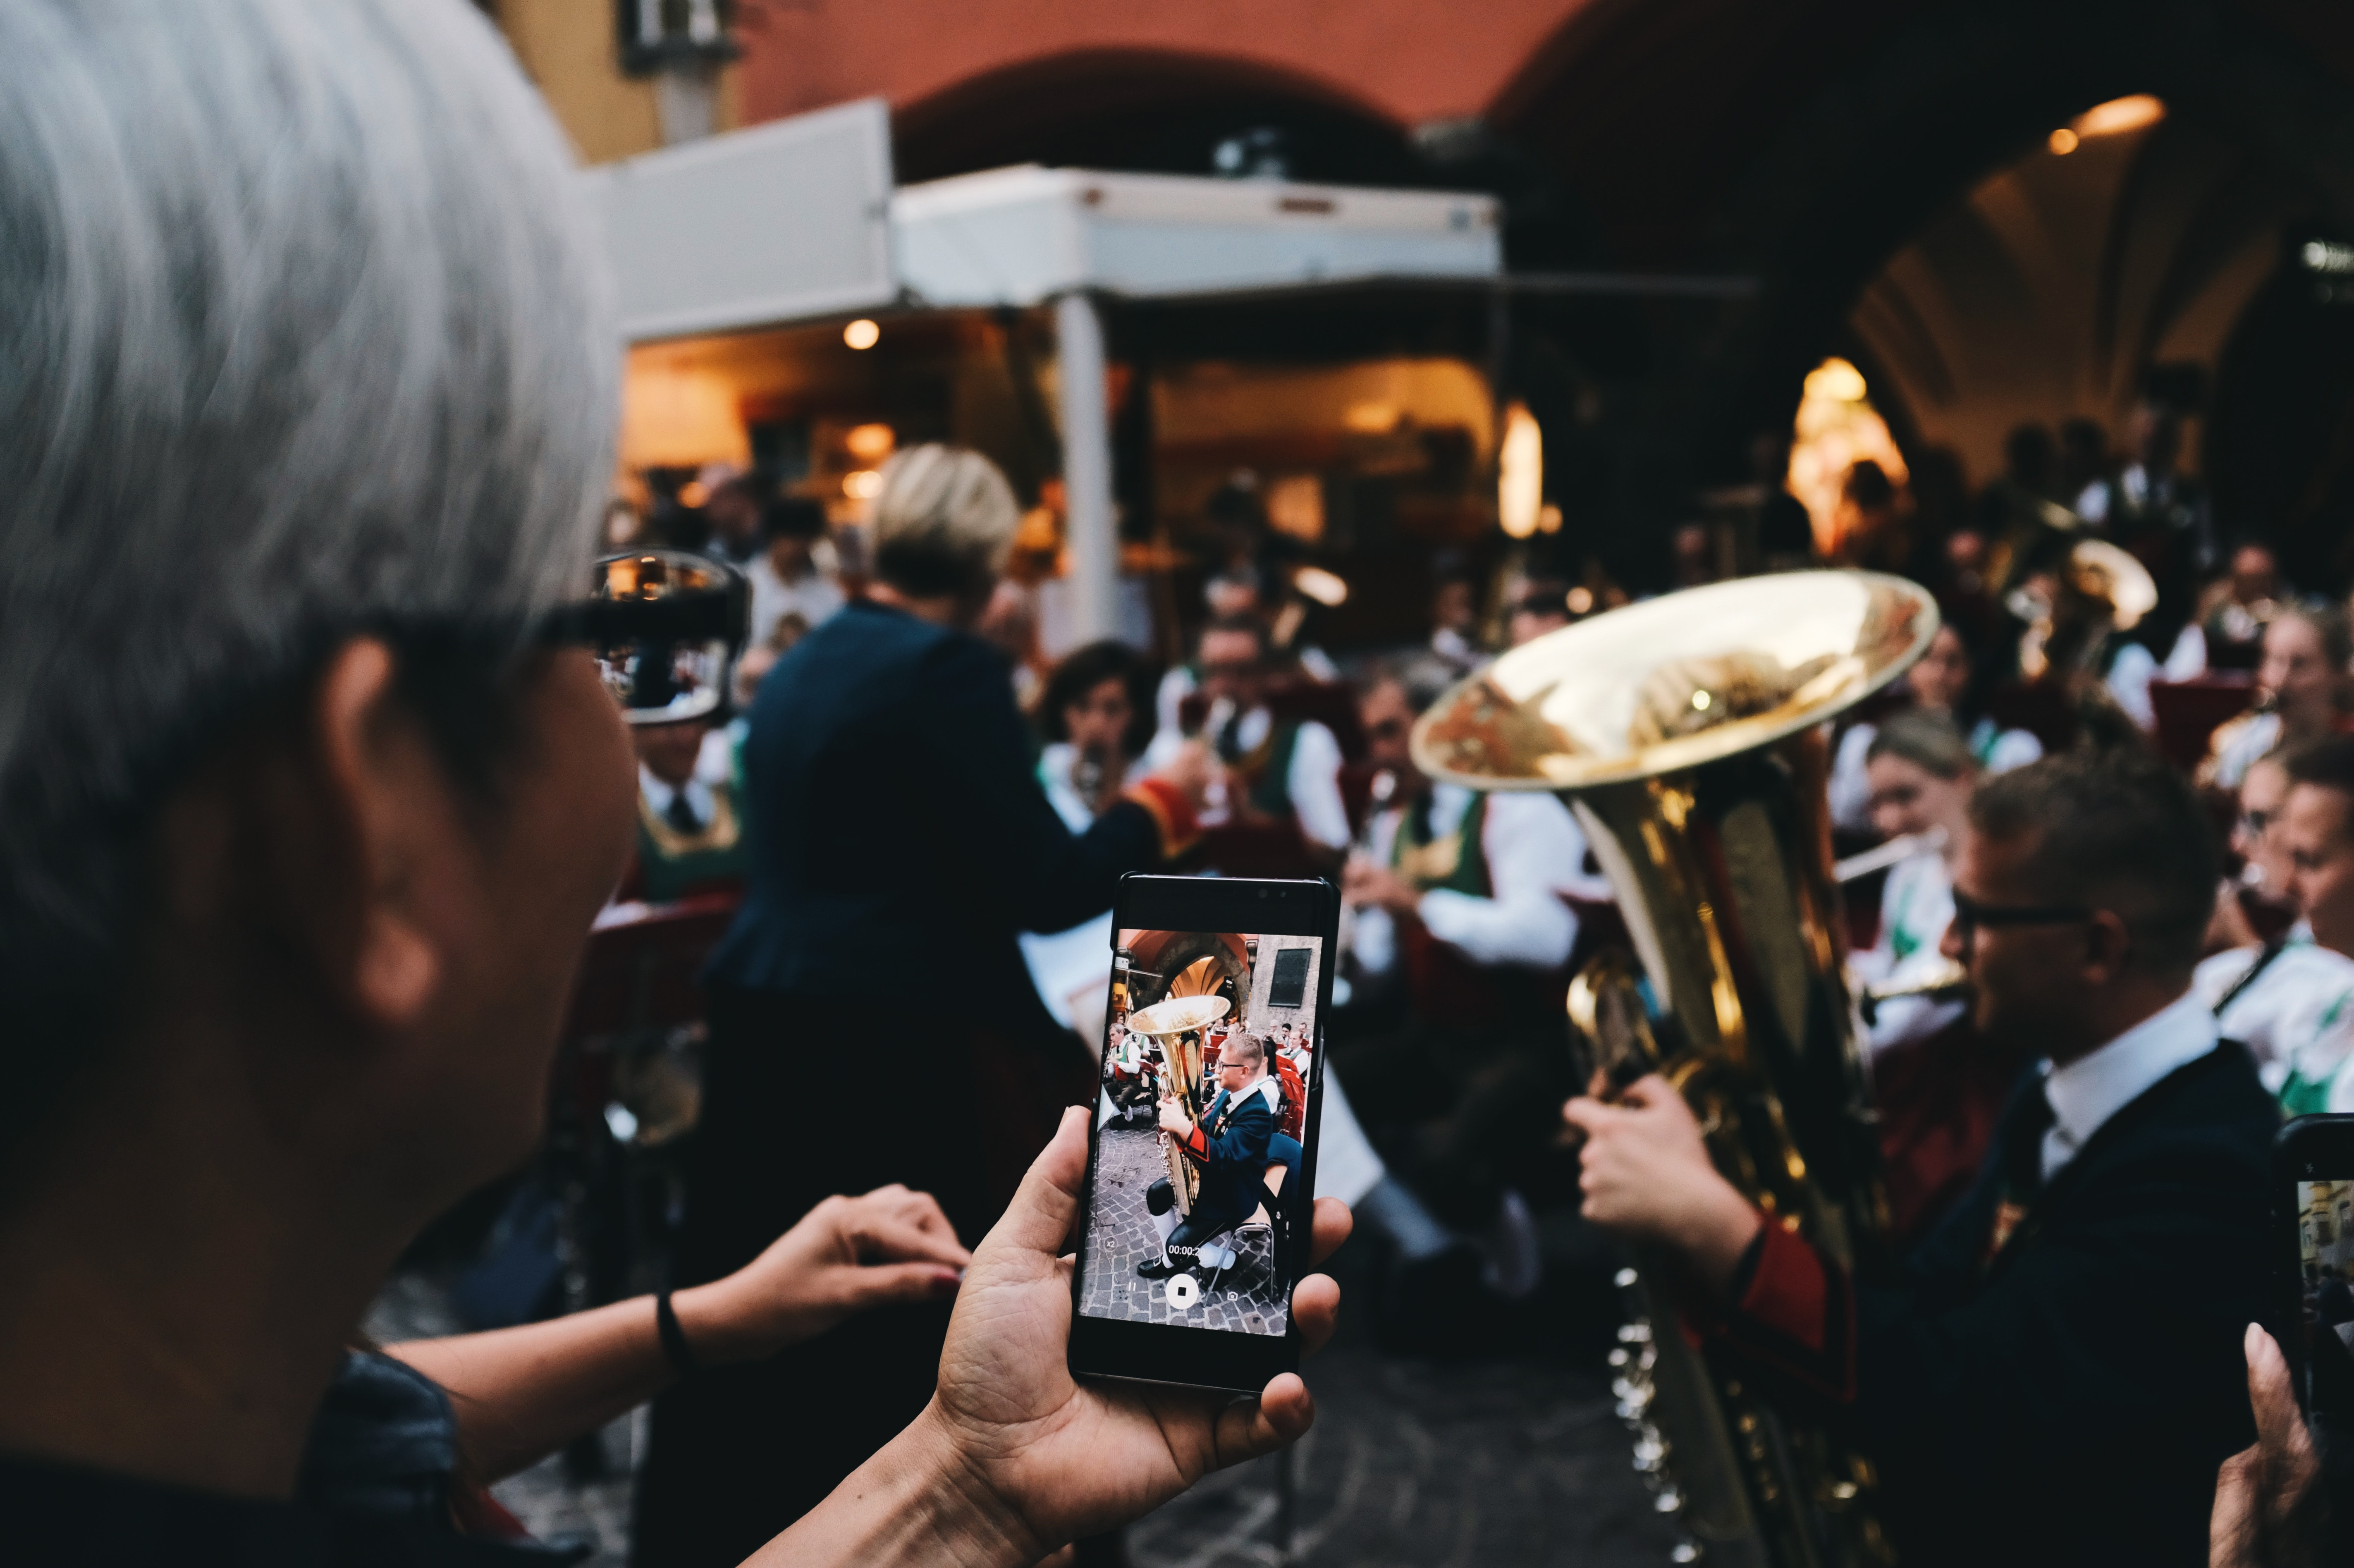 selective focus photo of woman holding phone taking a photo of man playing instrument